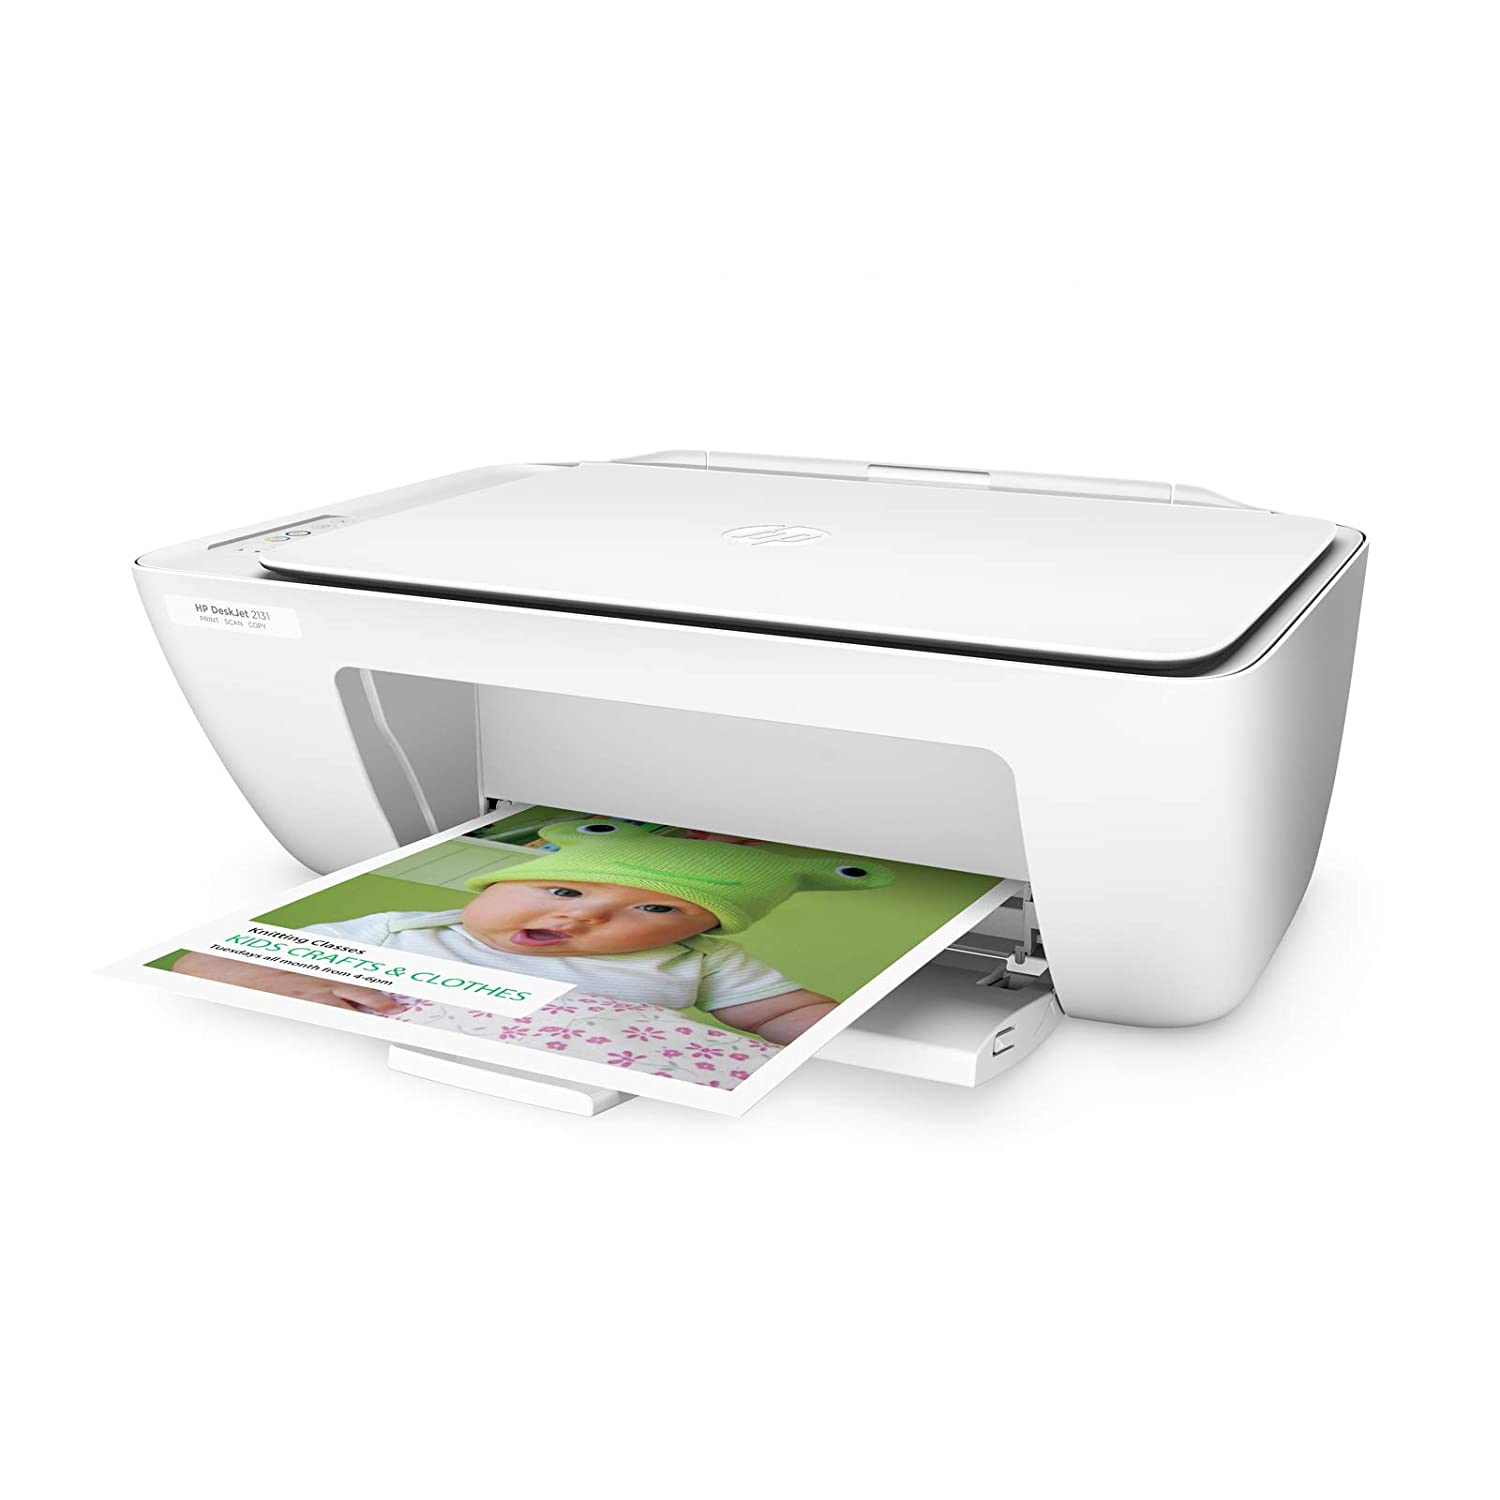 Amazon.in: Buy HP DeskJet 2131 All-in-One Inkjet Colour Printer Online at  Low Prices in India | HP Reviews & Ratings